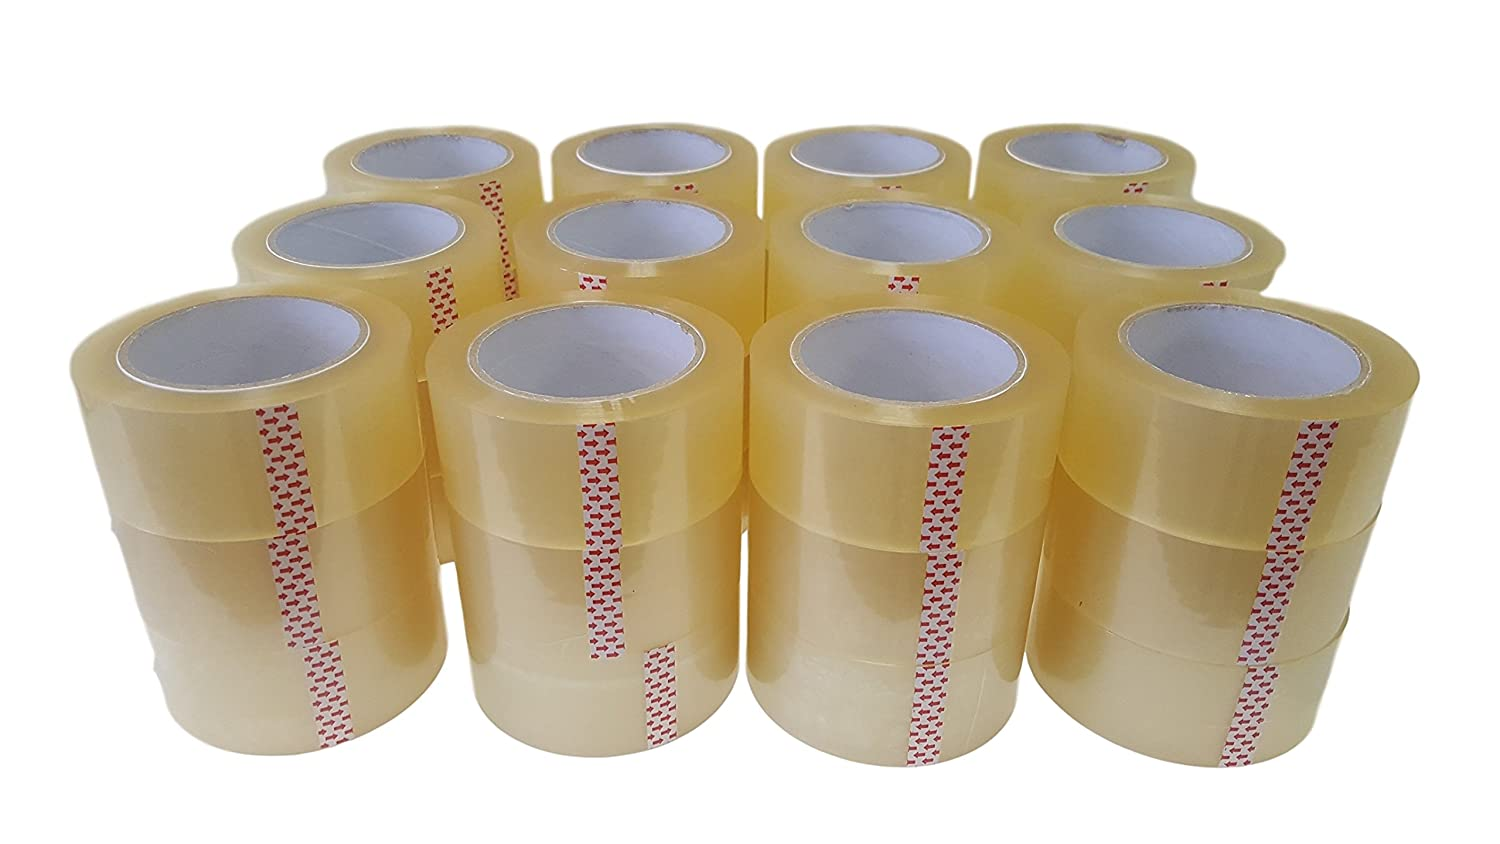 Oknuu 36-Rolls Clear Packaging Packing Tape 2x110 Yards 48mm x 100m - BOPP Water Based Acrylic Glue - Super Strong Carton Sealing Tape - Extra Heavy Duty - 2.56 MIL Thickness